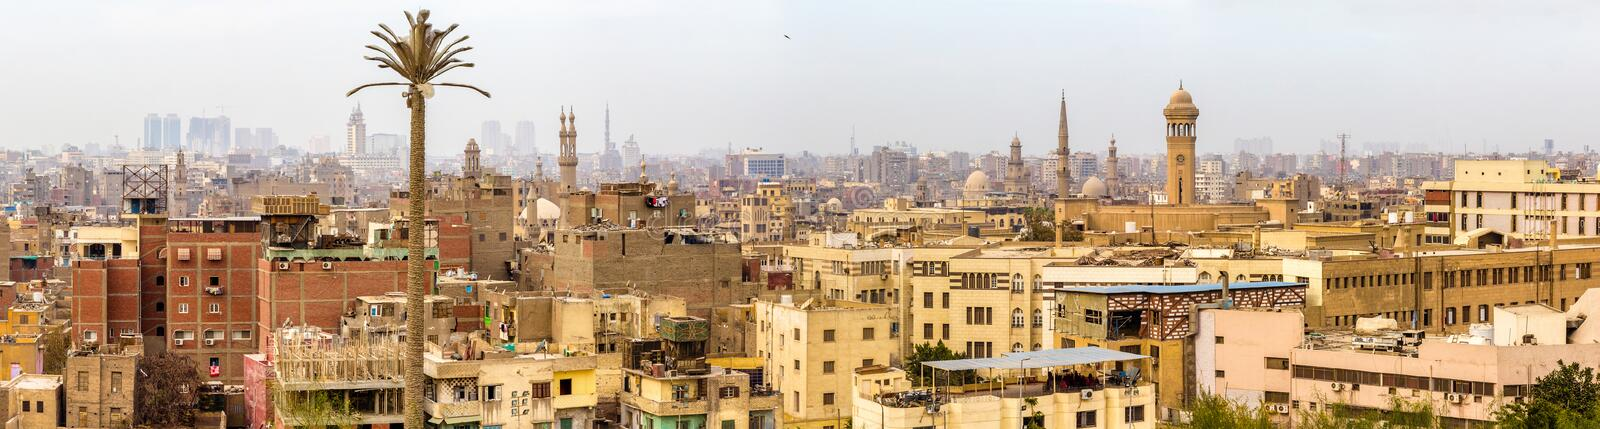 Panorama du Caire islamique images stock